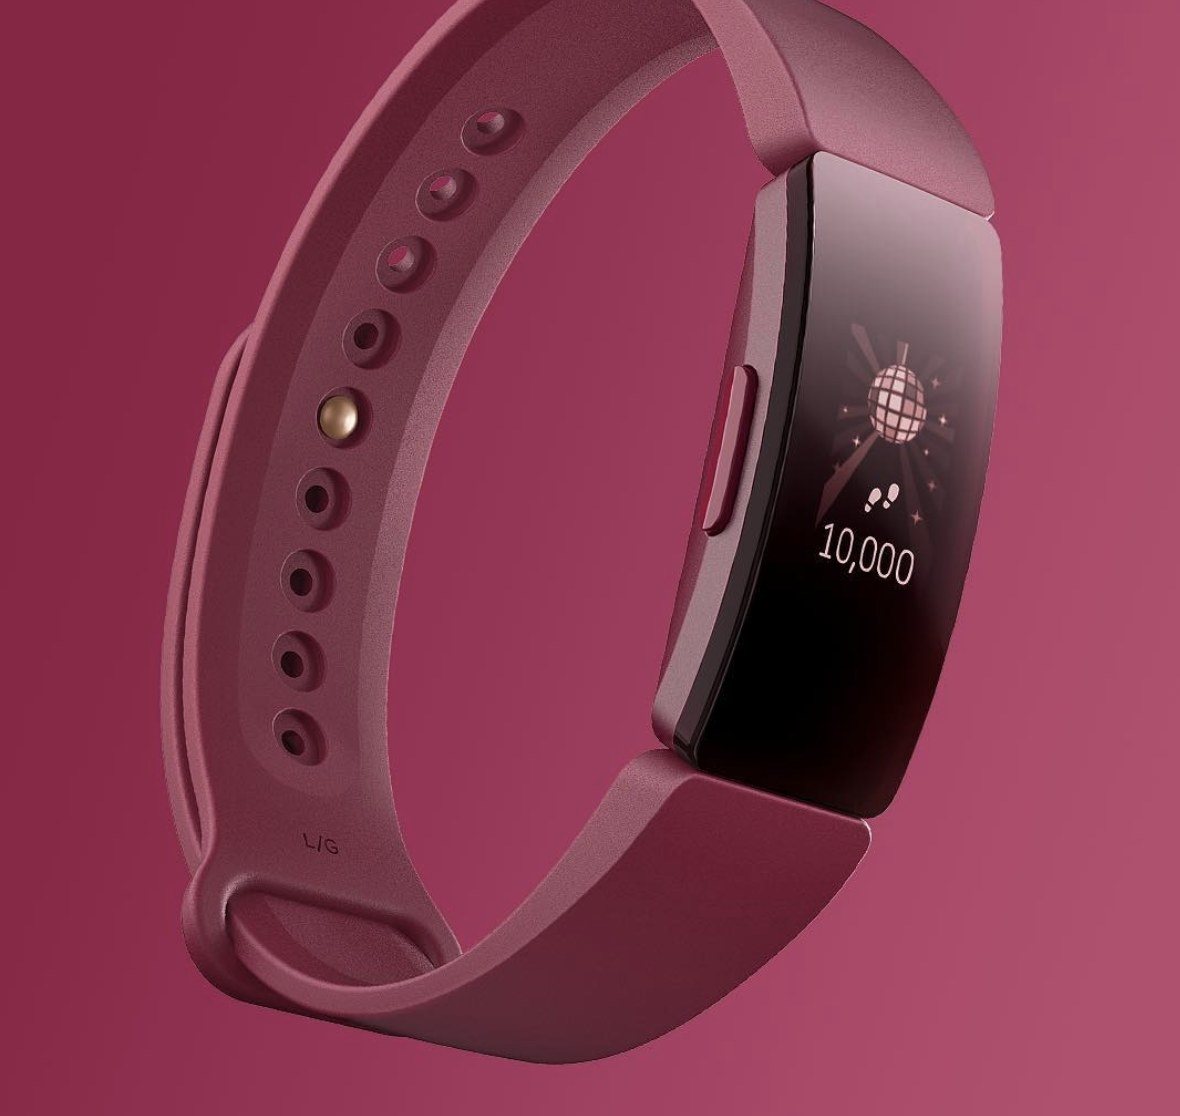 A sangria colored Fitbit wristwatch with a digital screen/face